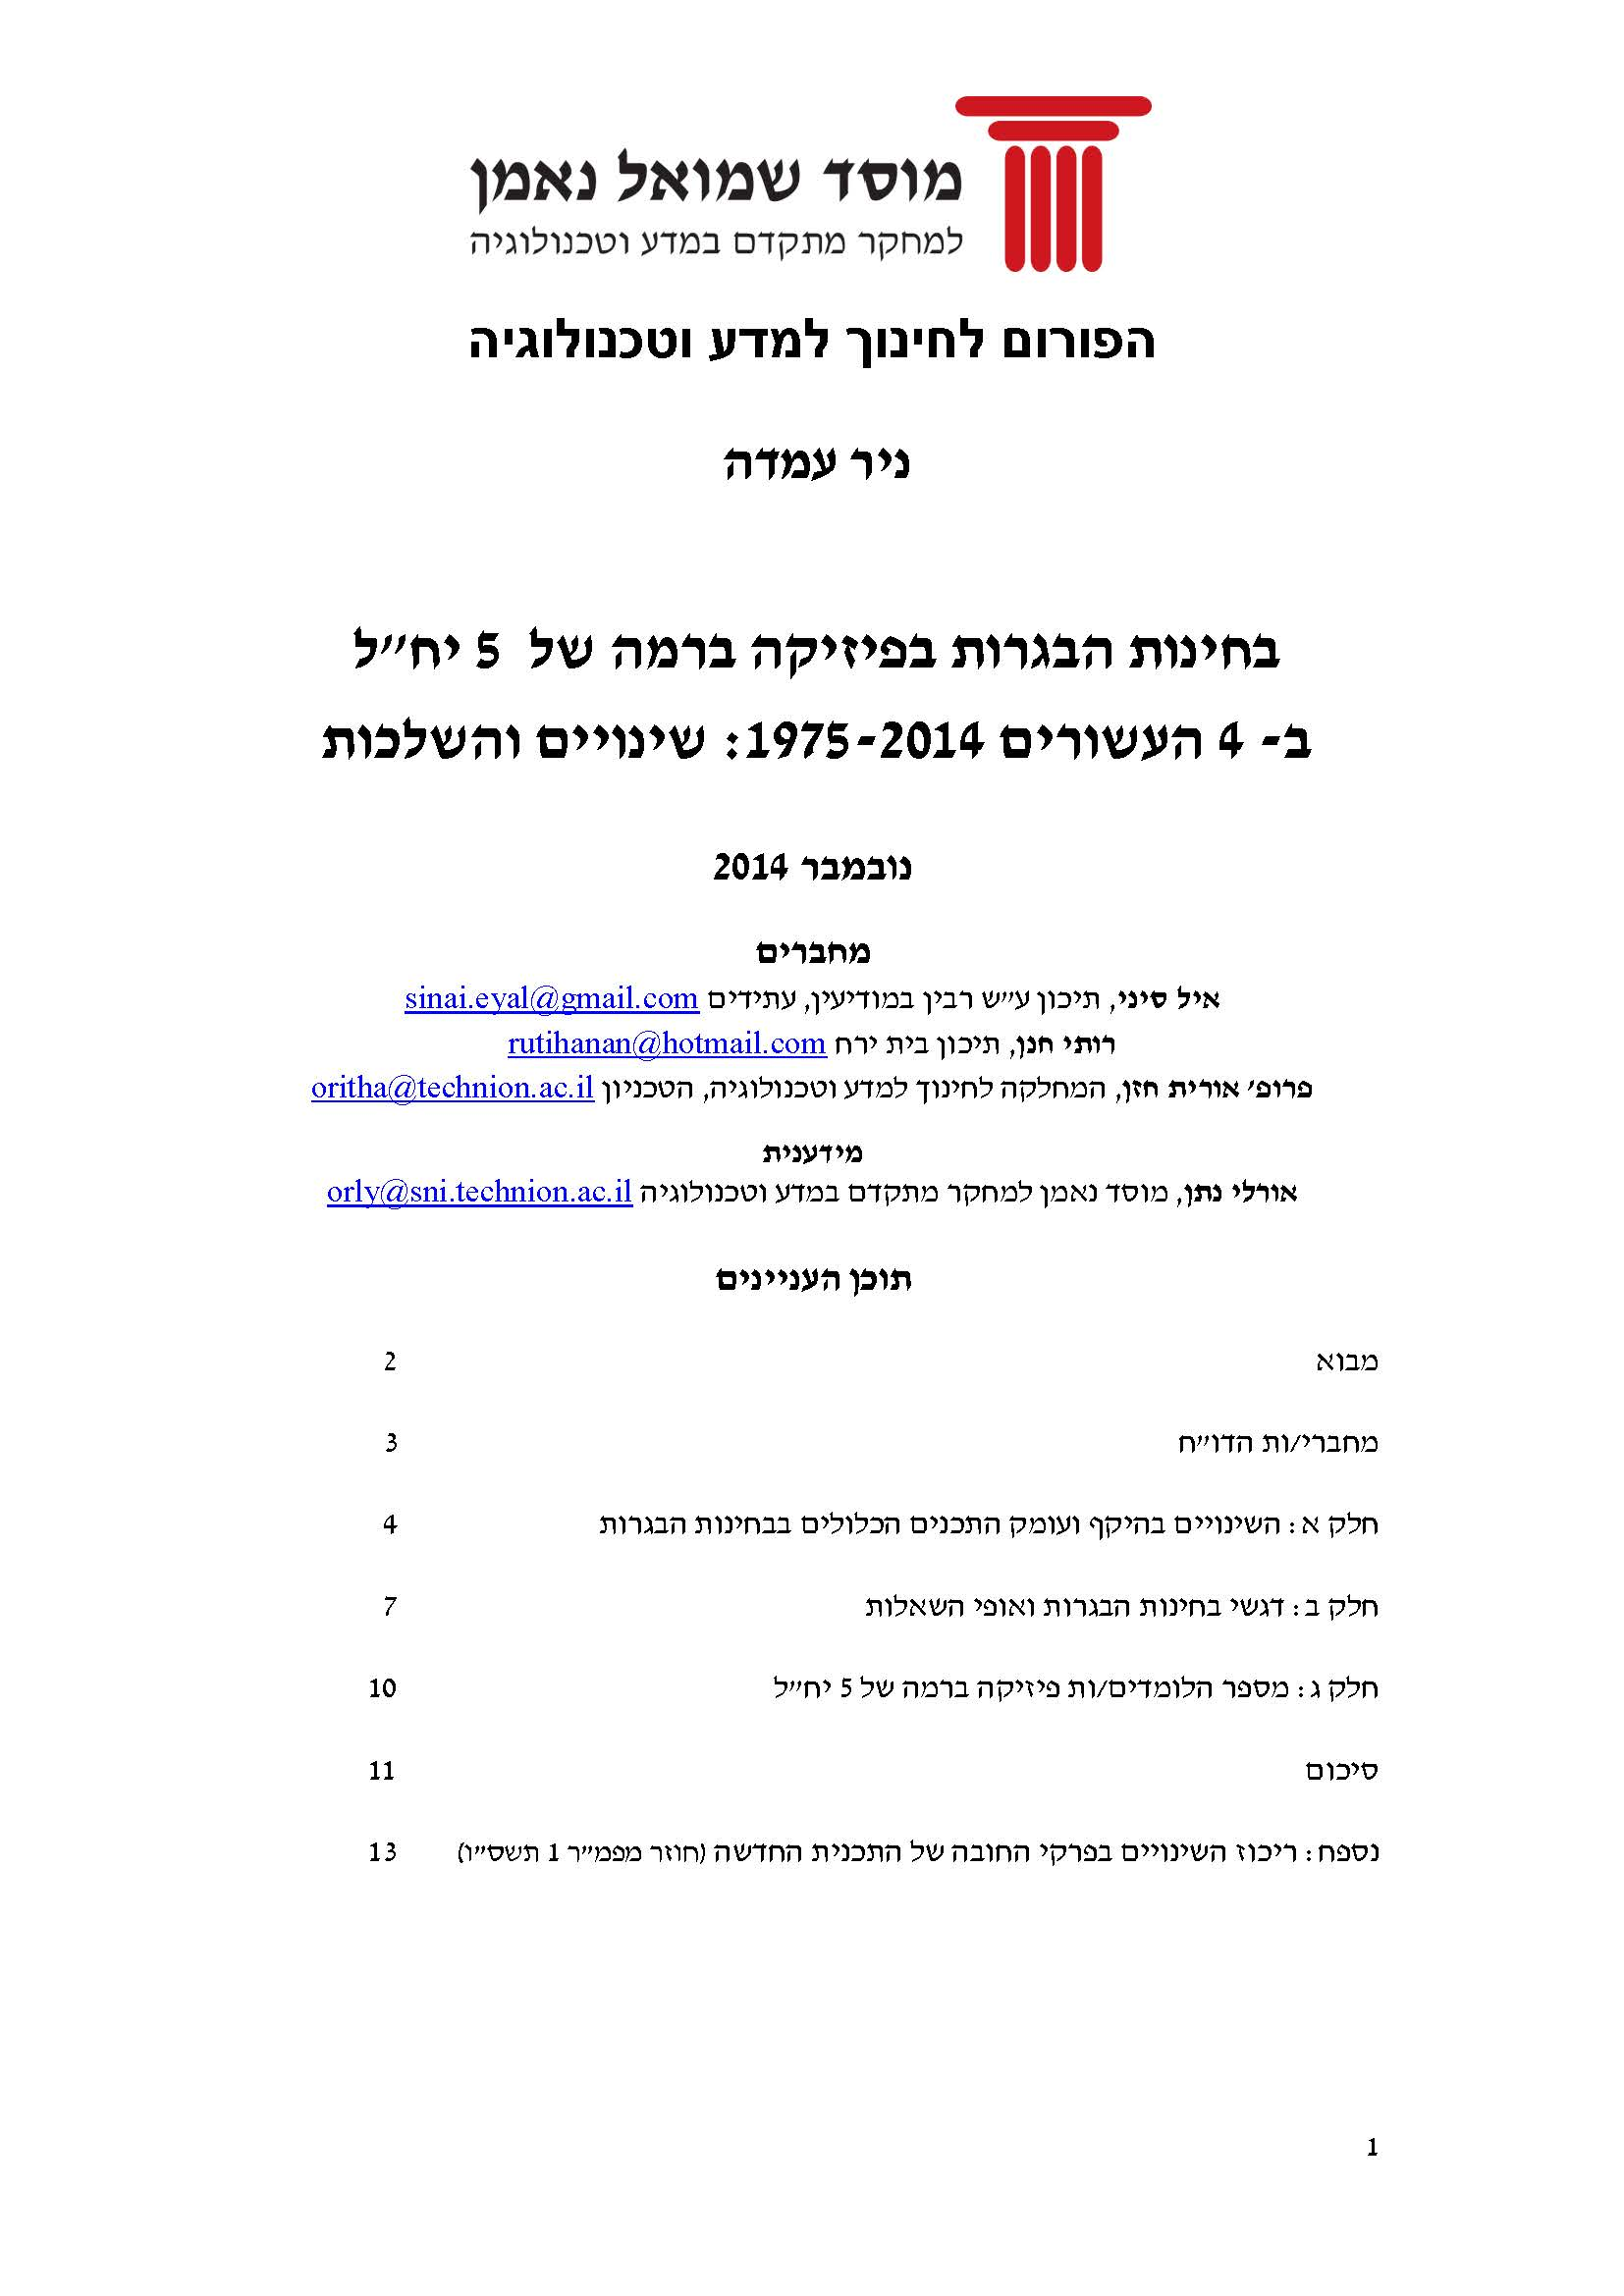 High school high-level Physics in the last 4 decades 1975-2014 in Israel: Changes and implications